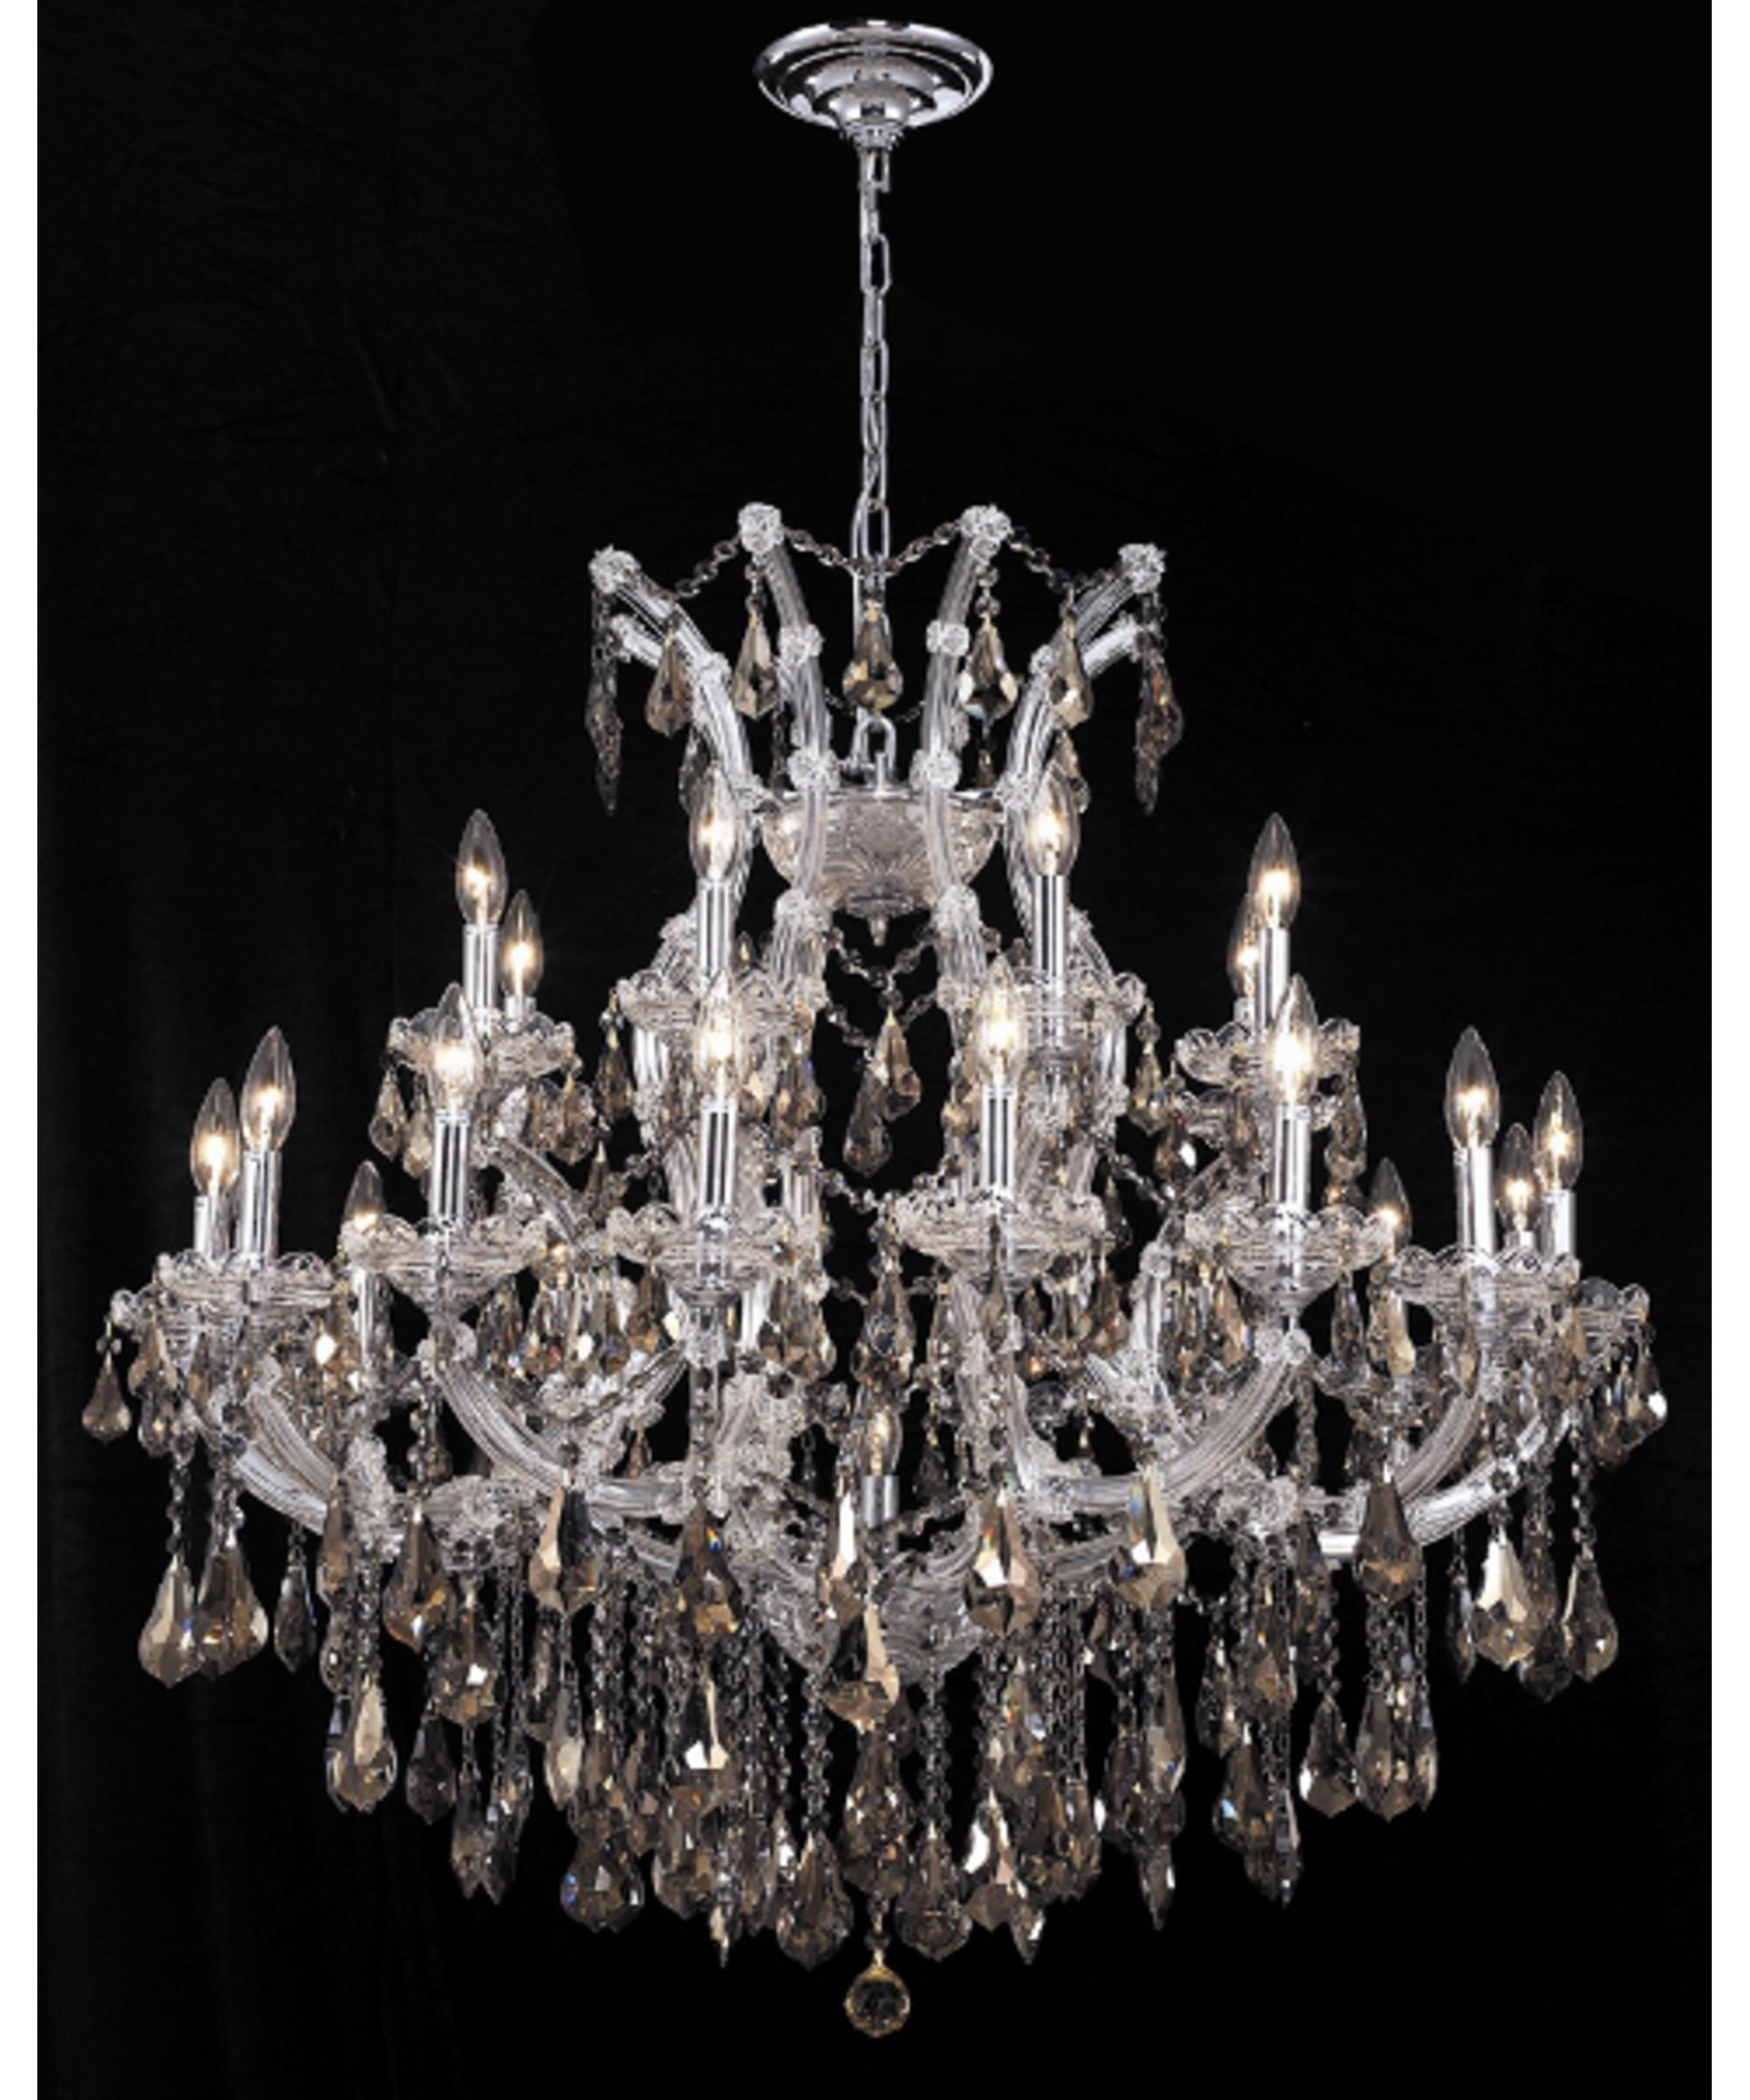 Maria Theresa Chandeliers: Elegant Lighting Maria Theresa 36 Inch Wide 24 Light Chandelier | Capitol  Lighting 1-800lighting.com,Lighting